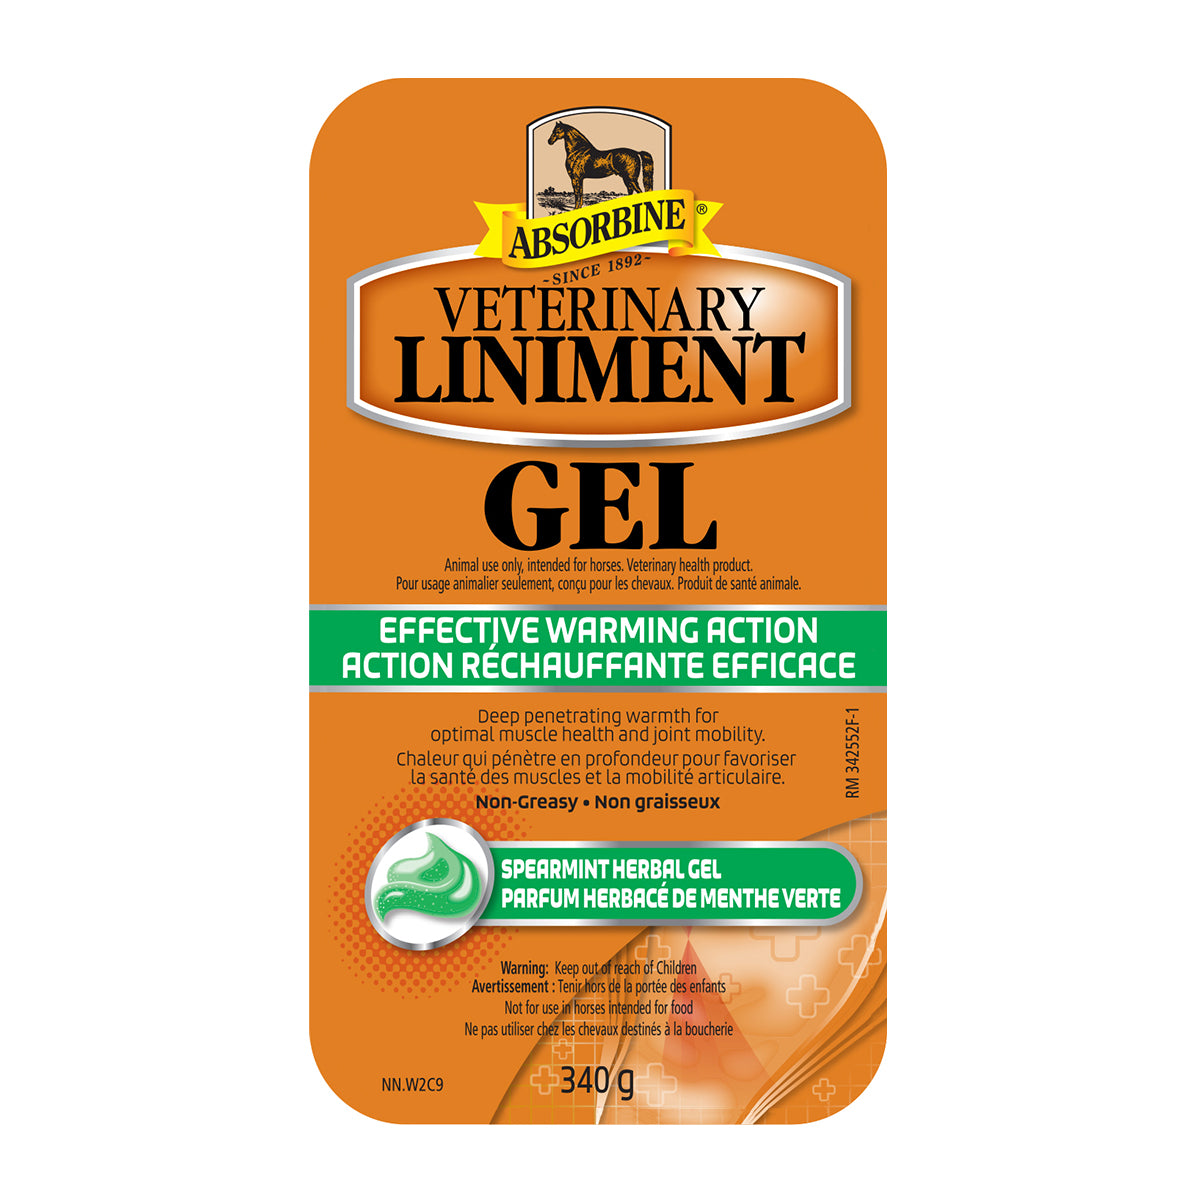 Absorbine® Veterinary Liniment Gel